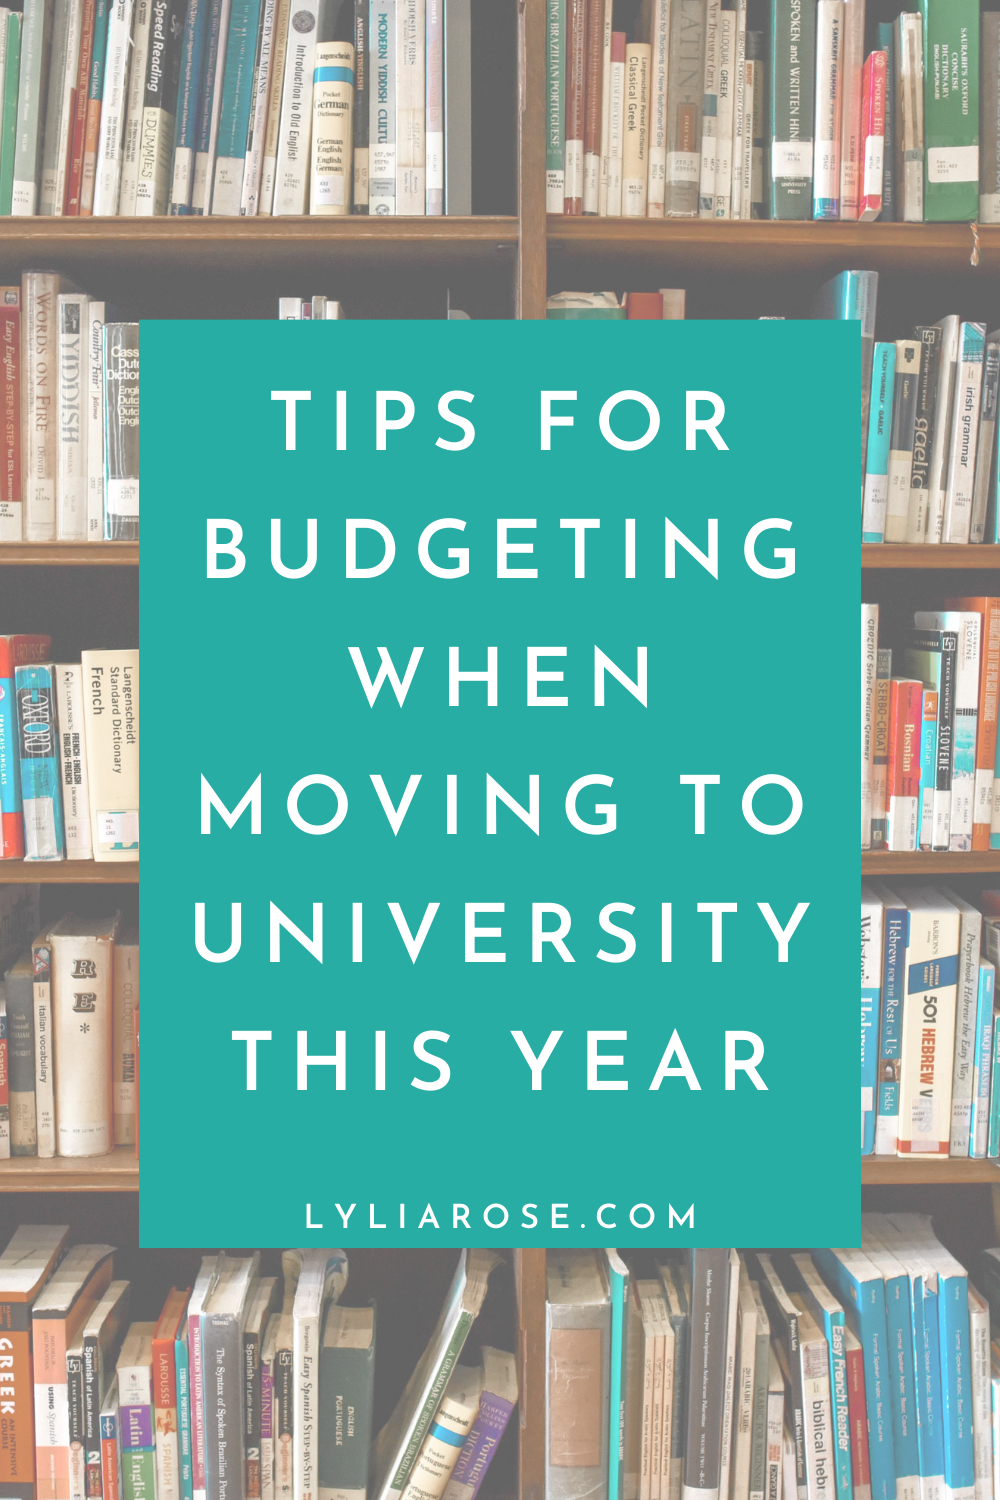 Tips for budgeting when moving to university this year